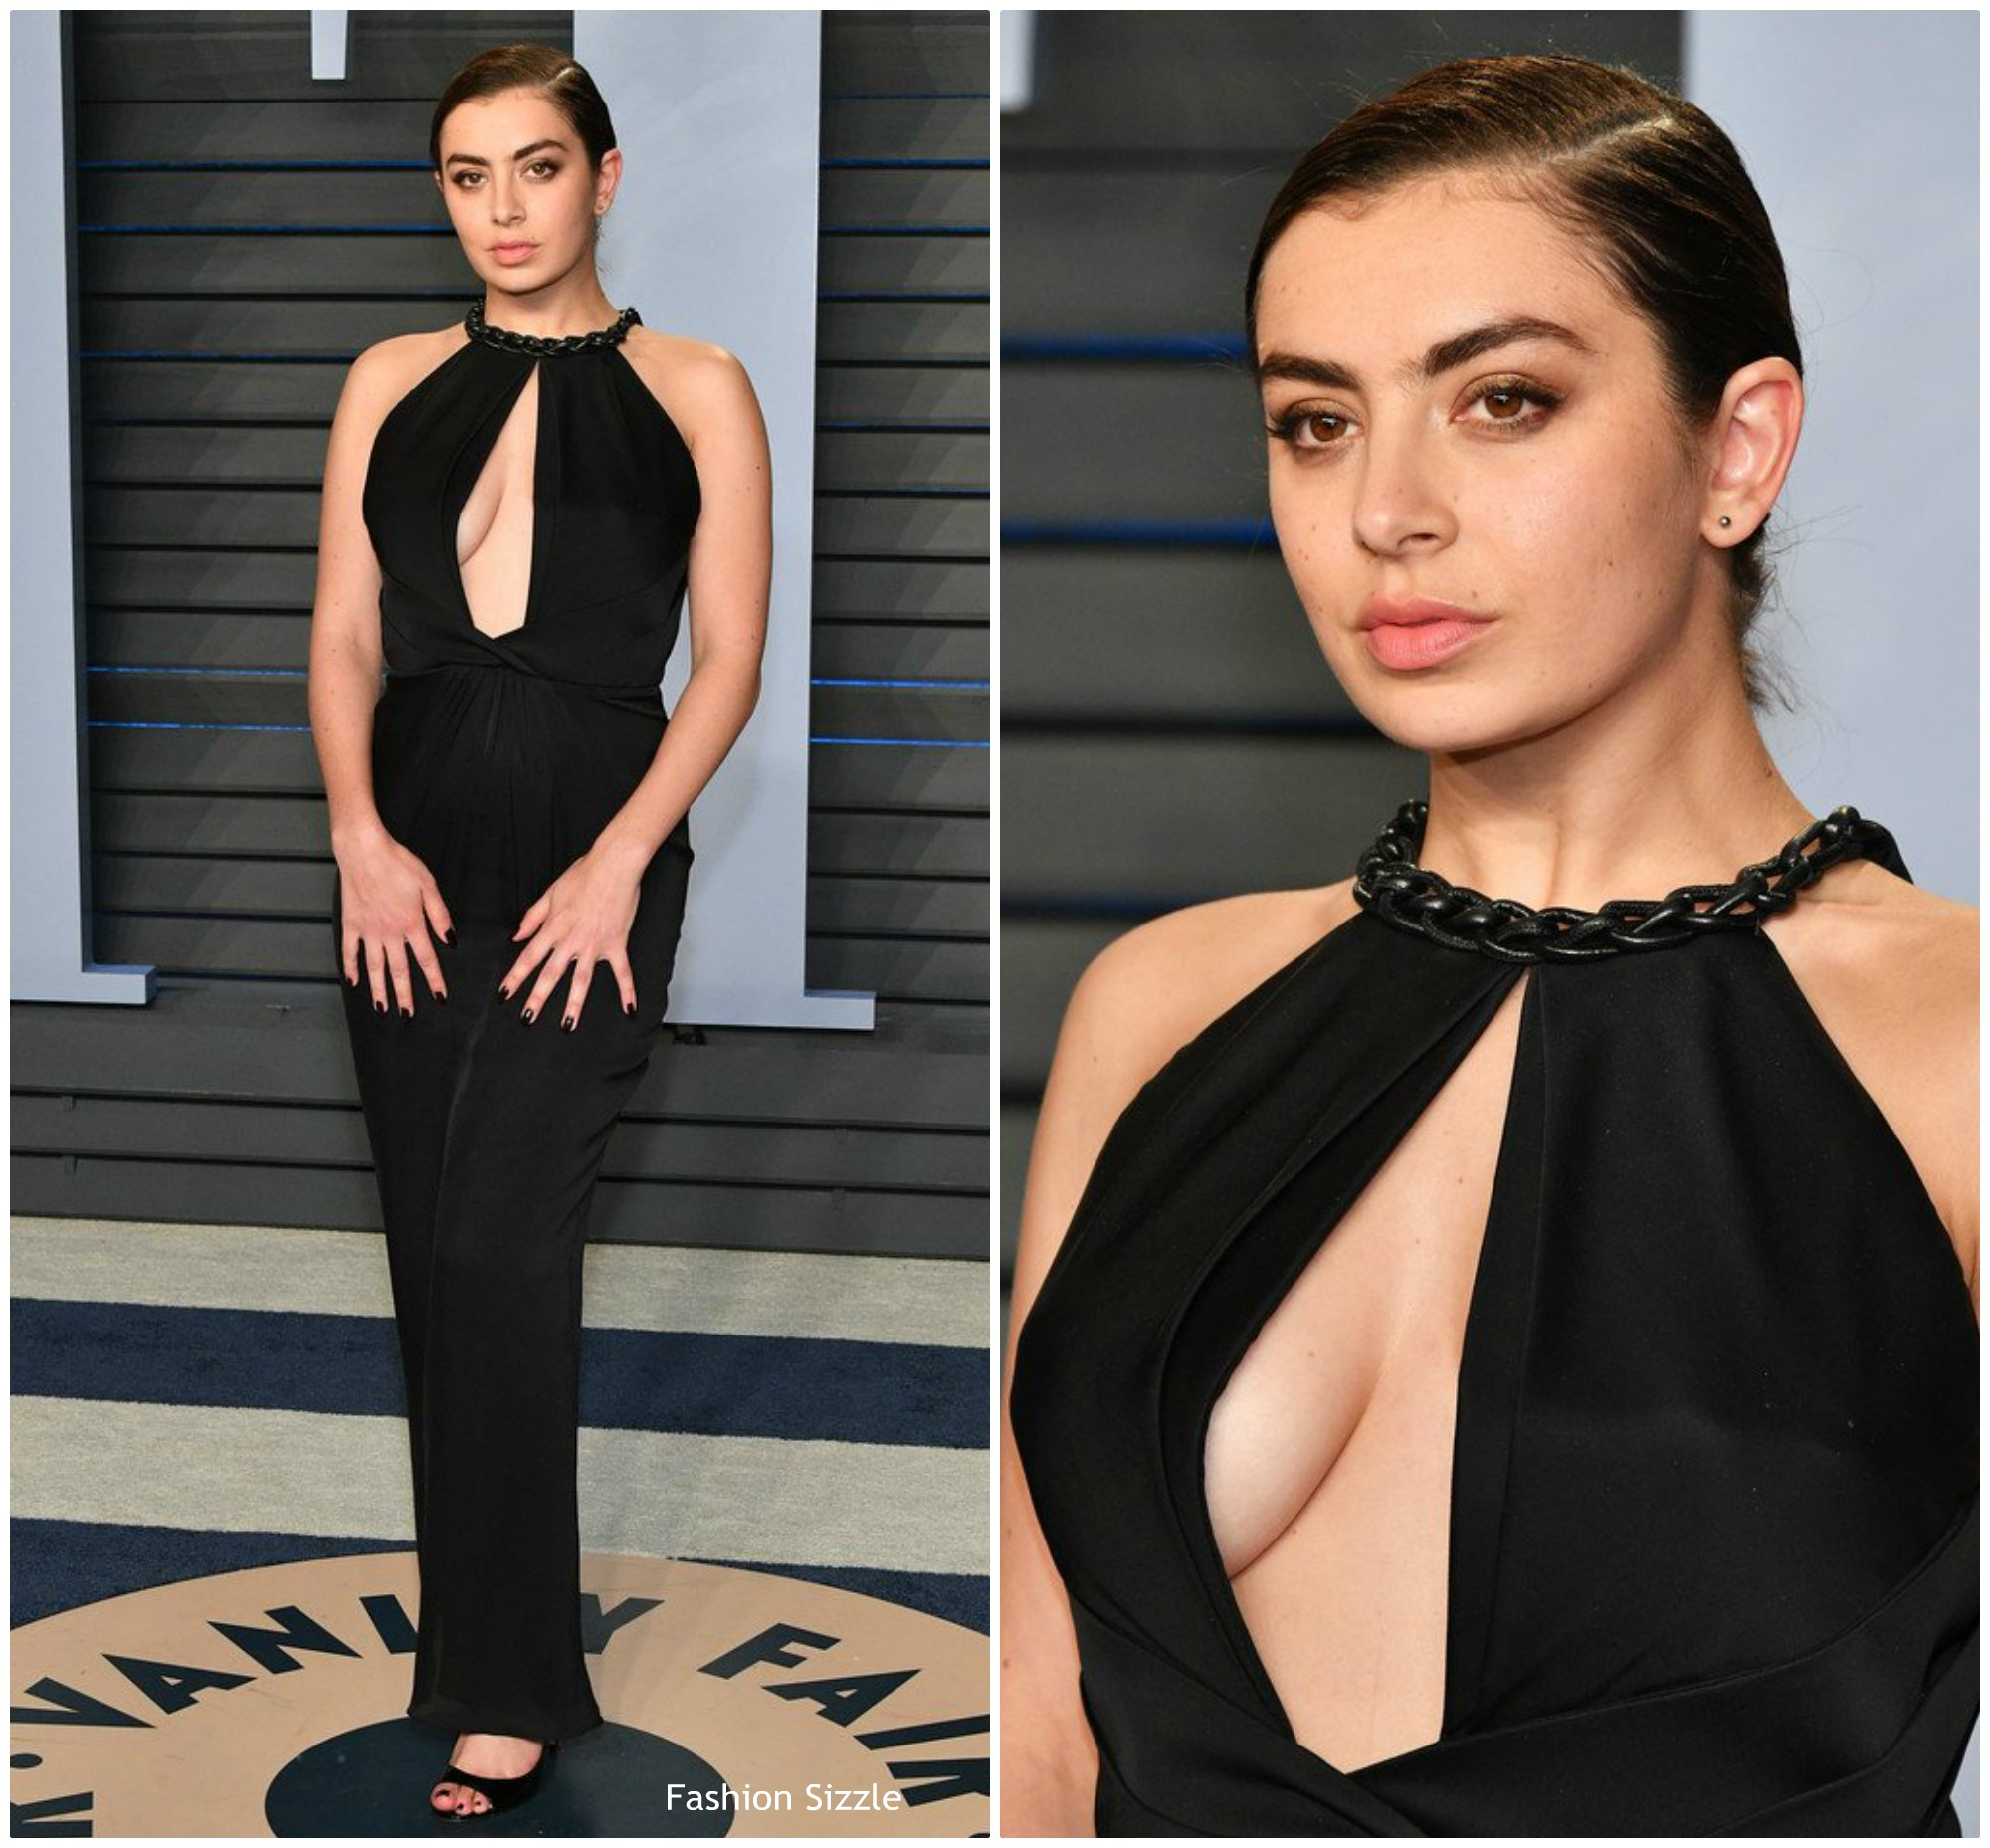 charli-xcx-in-giorgio-armani-2018-vanity-fair-oscar-party